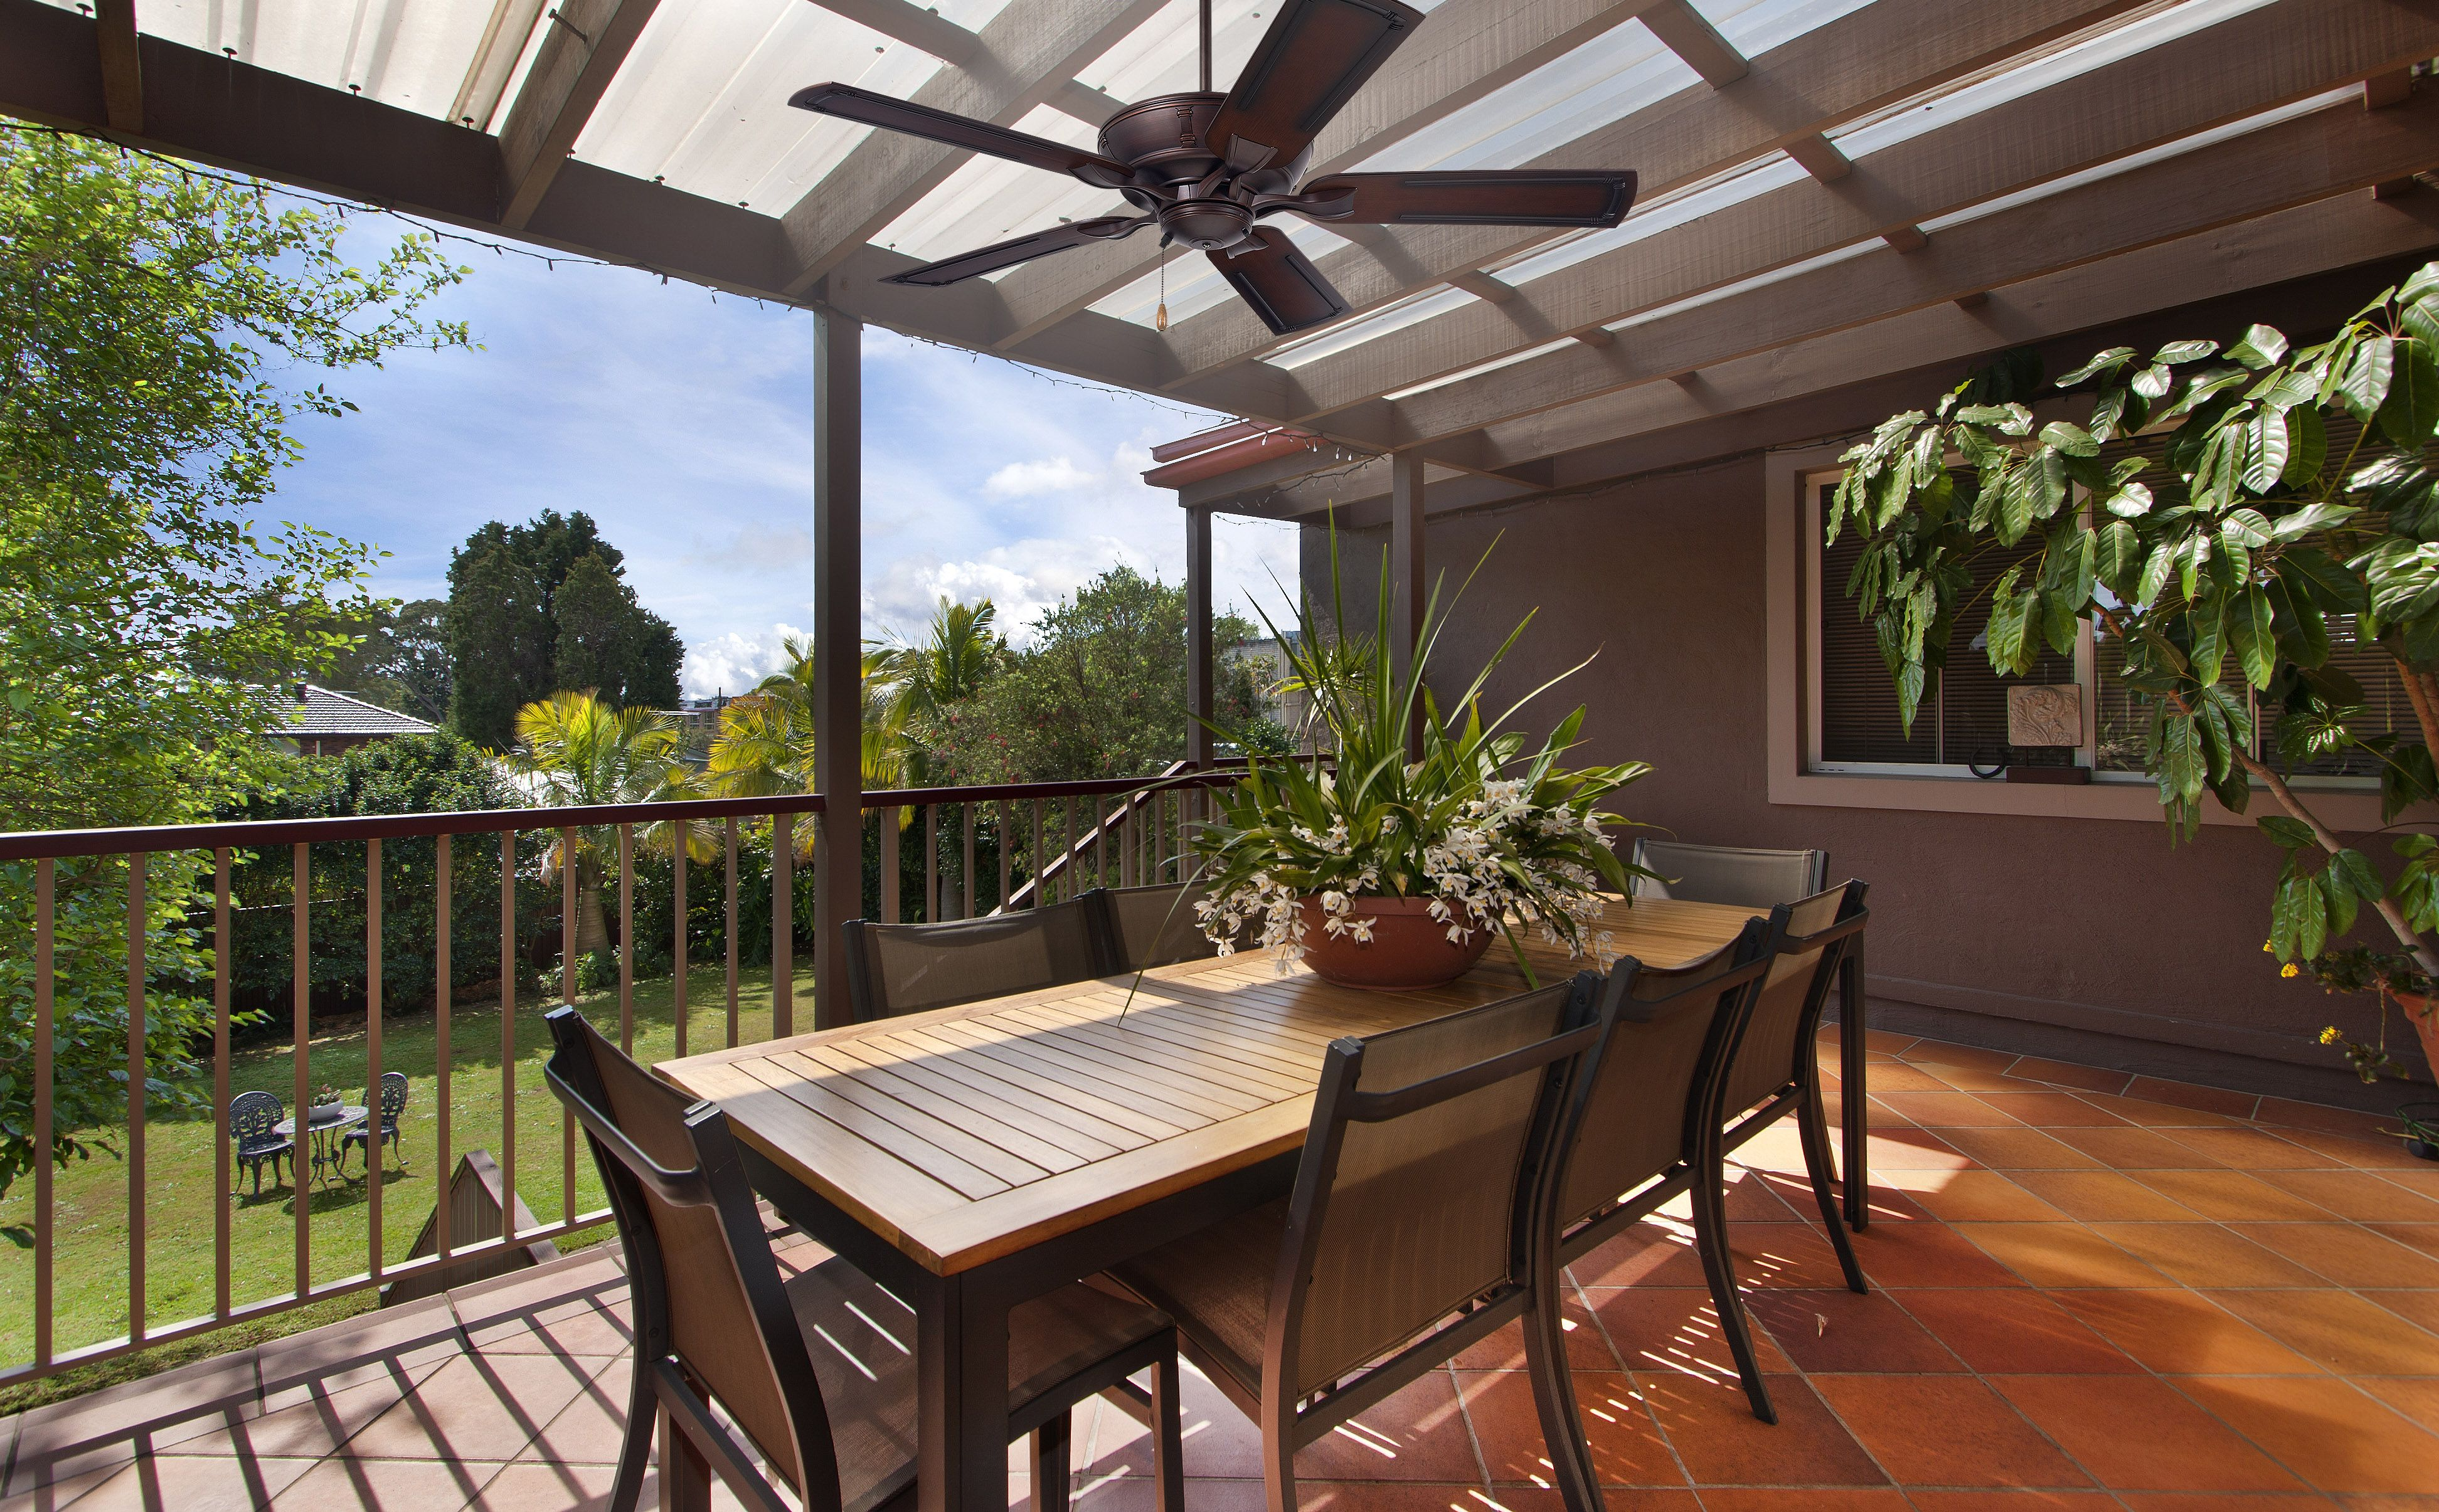 patios you how best patio outdoor systems this is devanhouse restaurants fans home pick misting fan for the